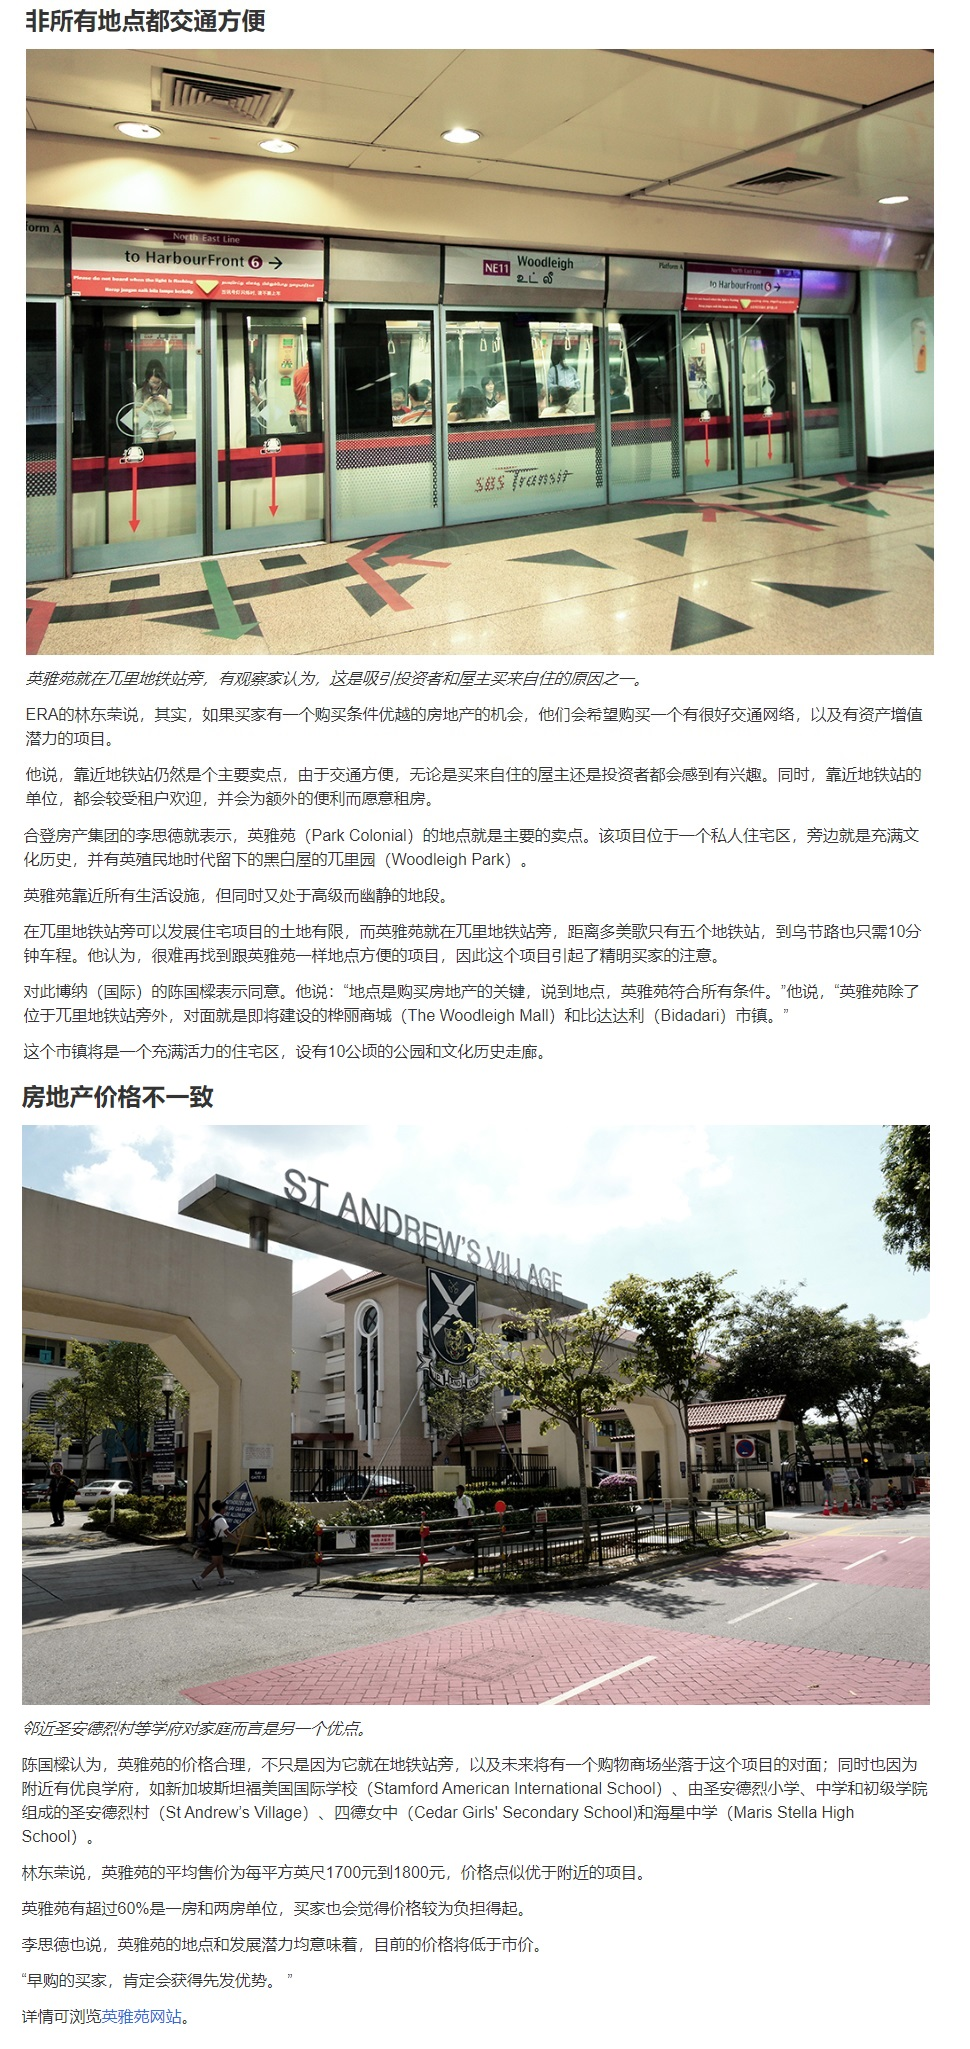 park-colonial-woodleigh-mrt-best-selling-projects-rcr-pg3